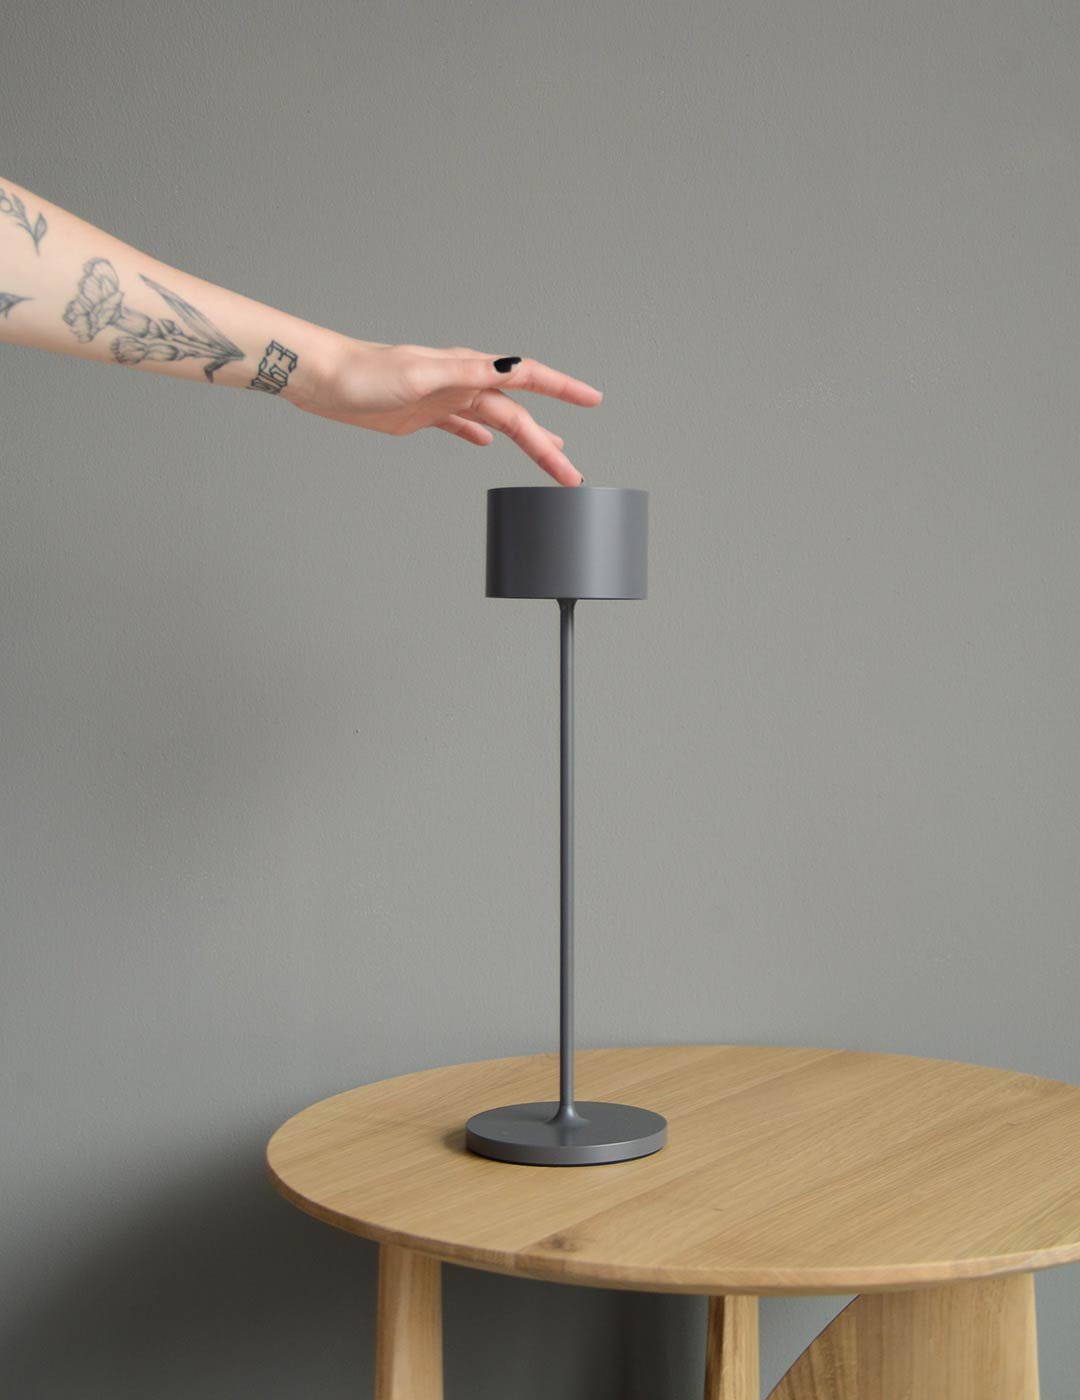 wireless chargeable LED table lamp for indoor and outdoor use